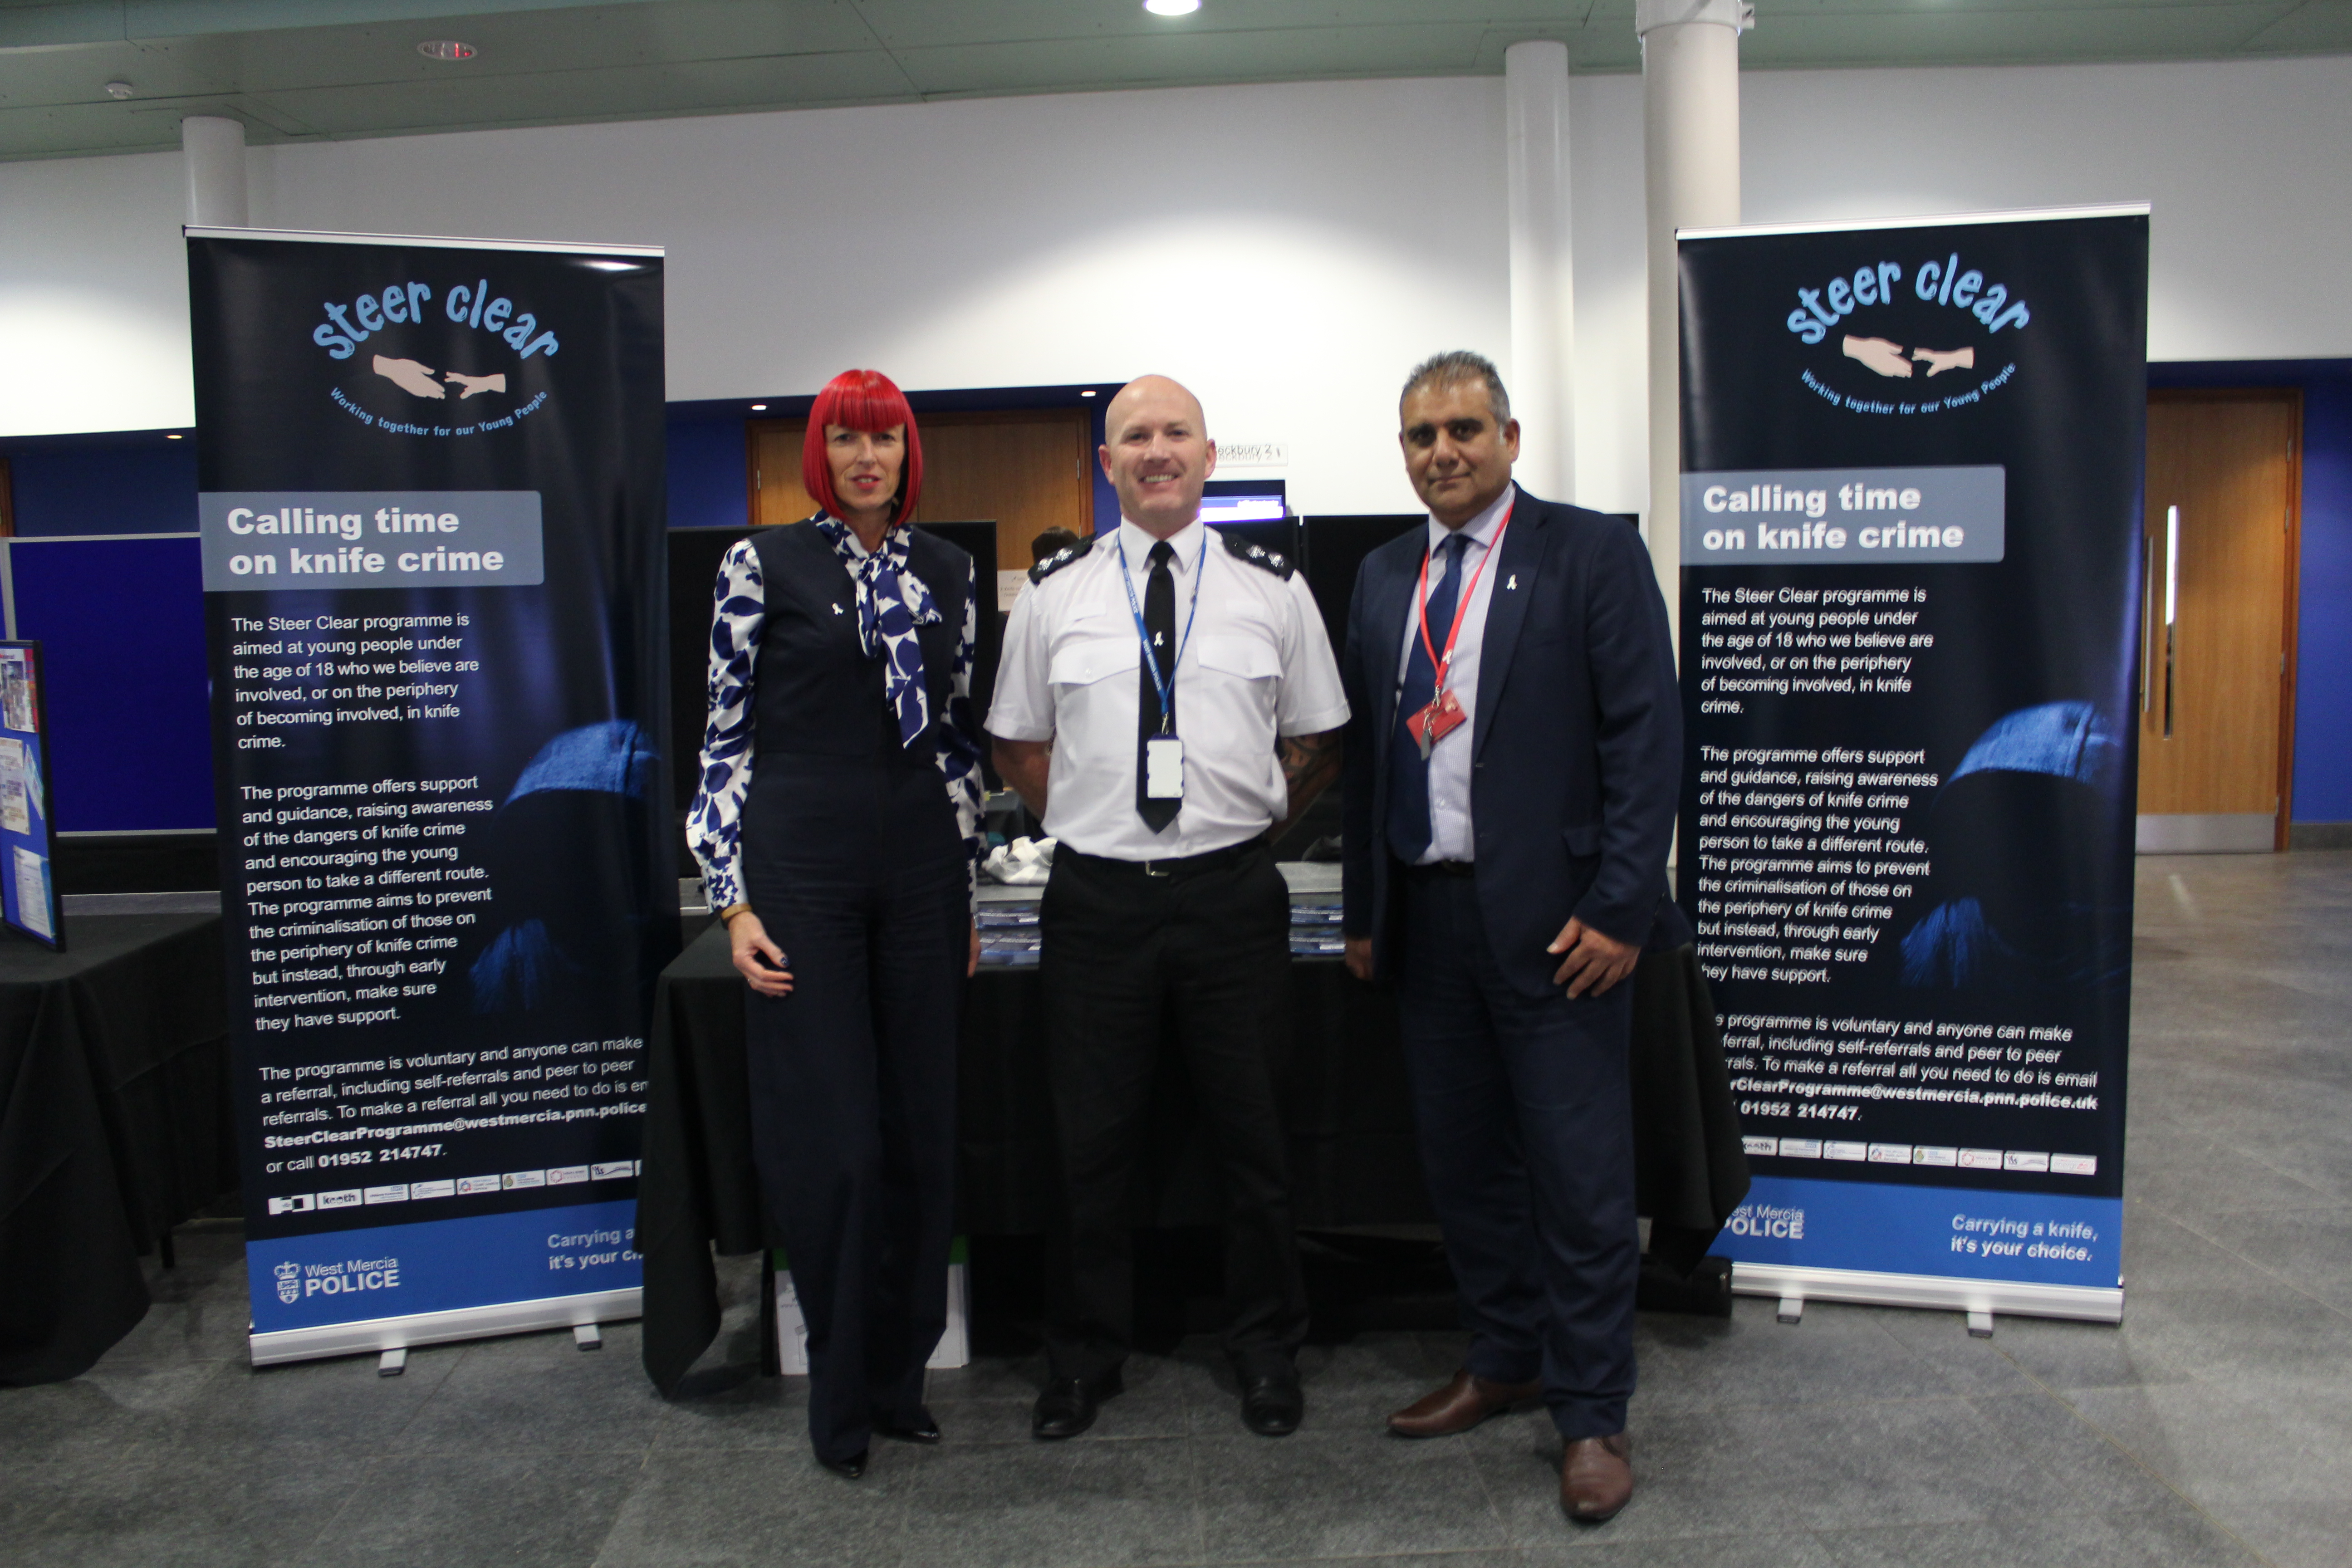 Working together to reduce serious violent crime in Telford